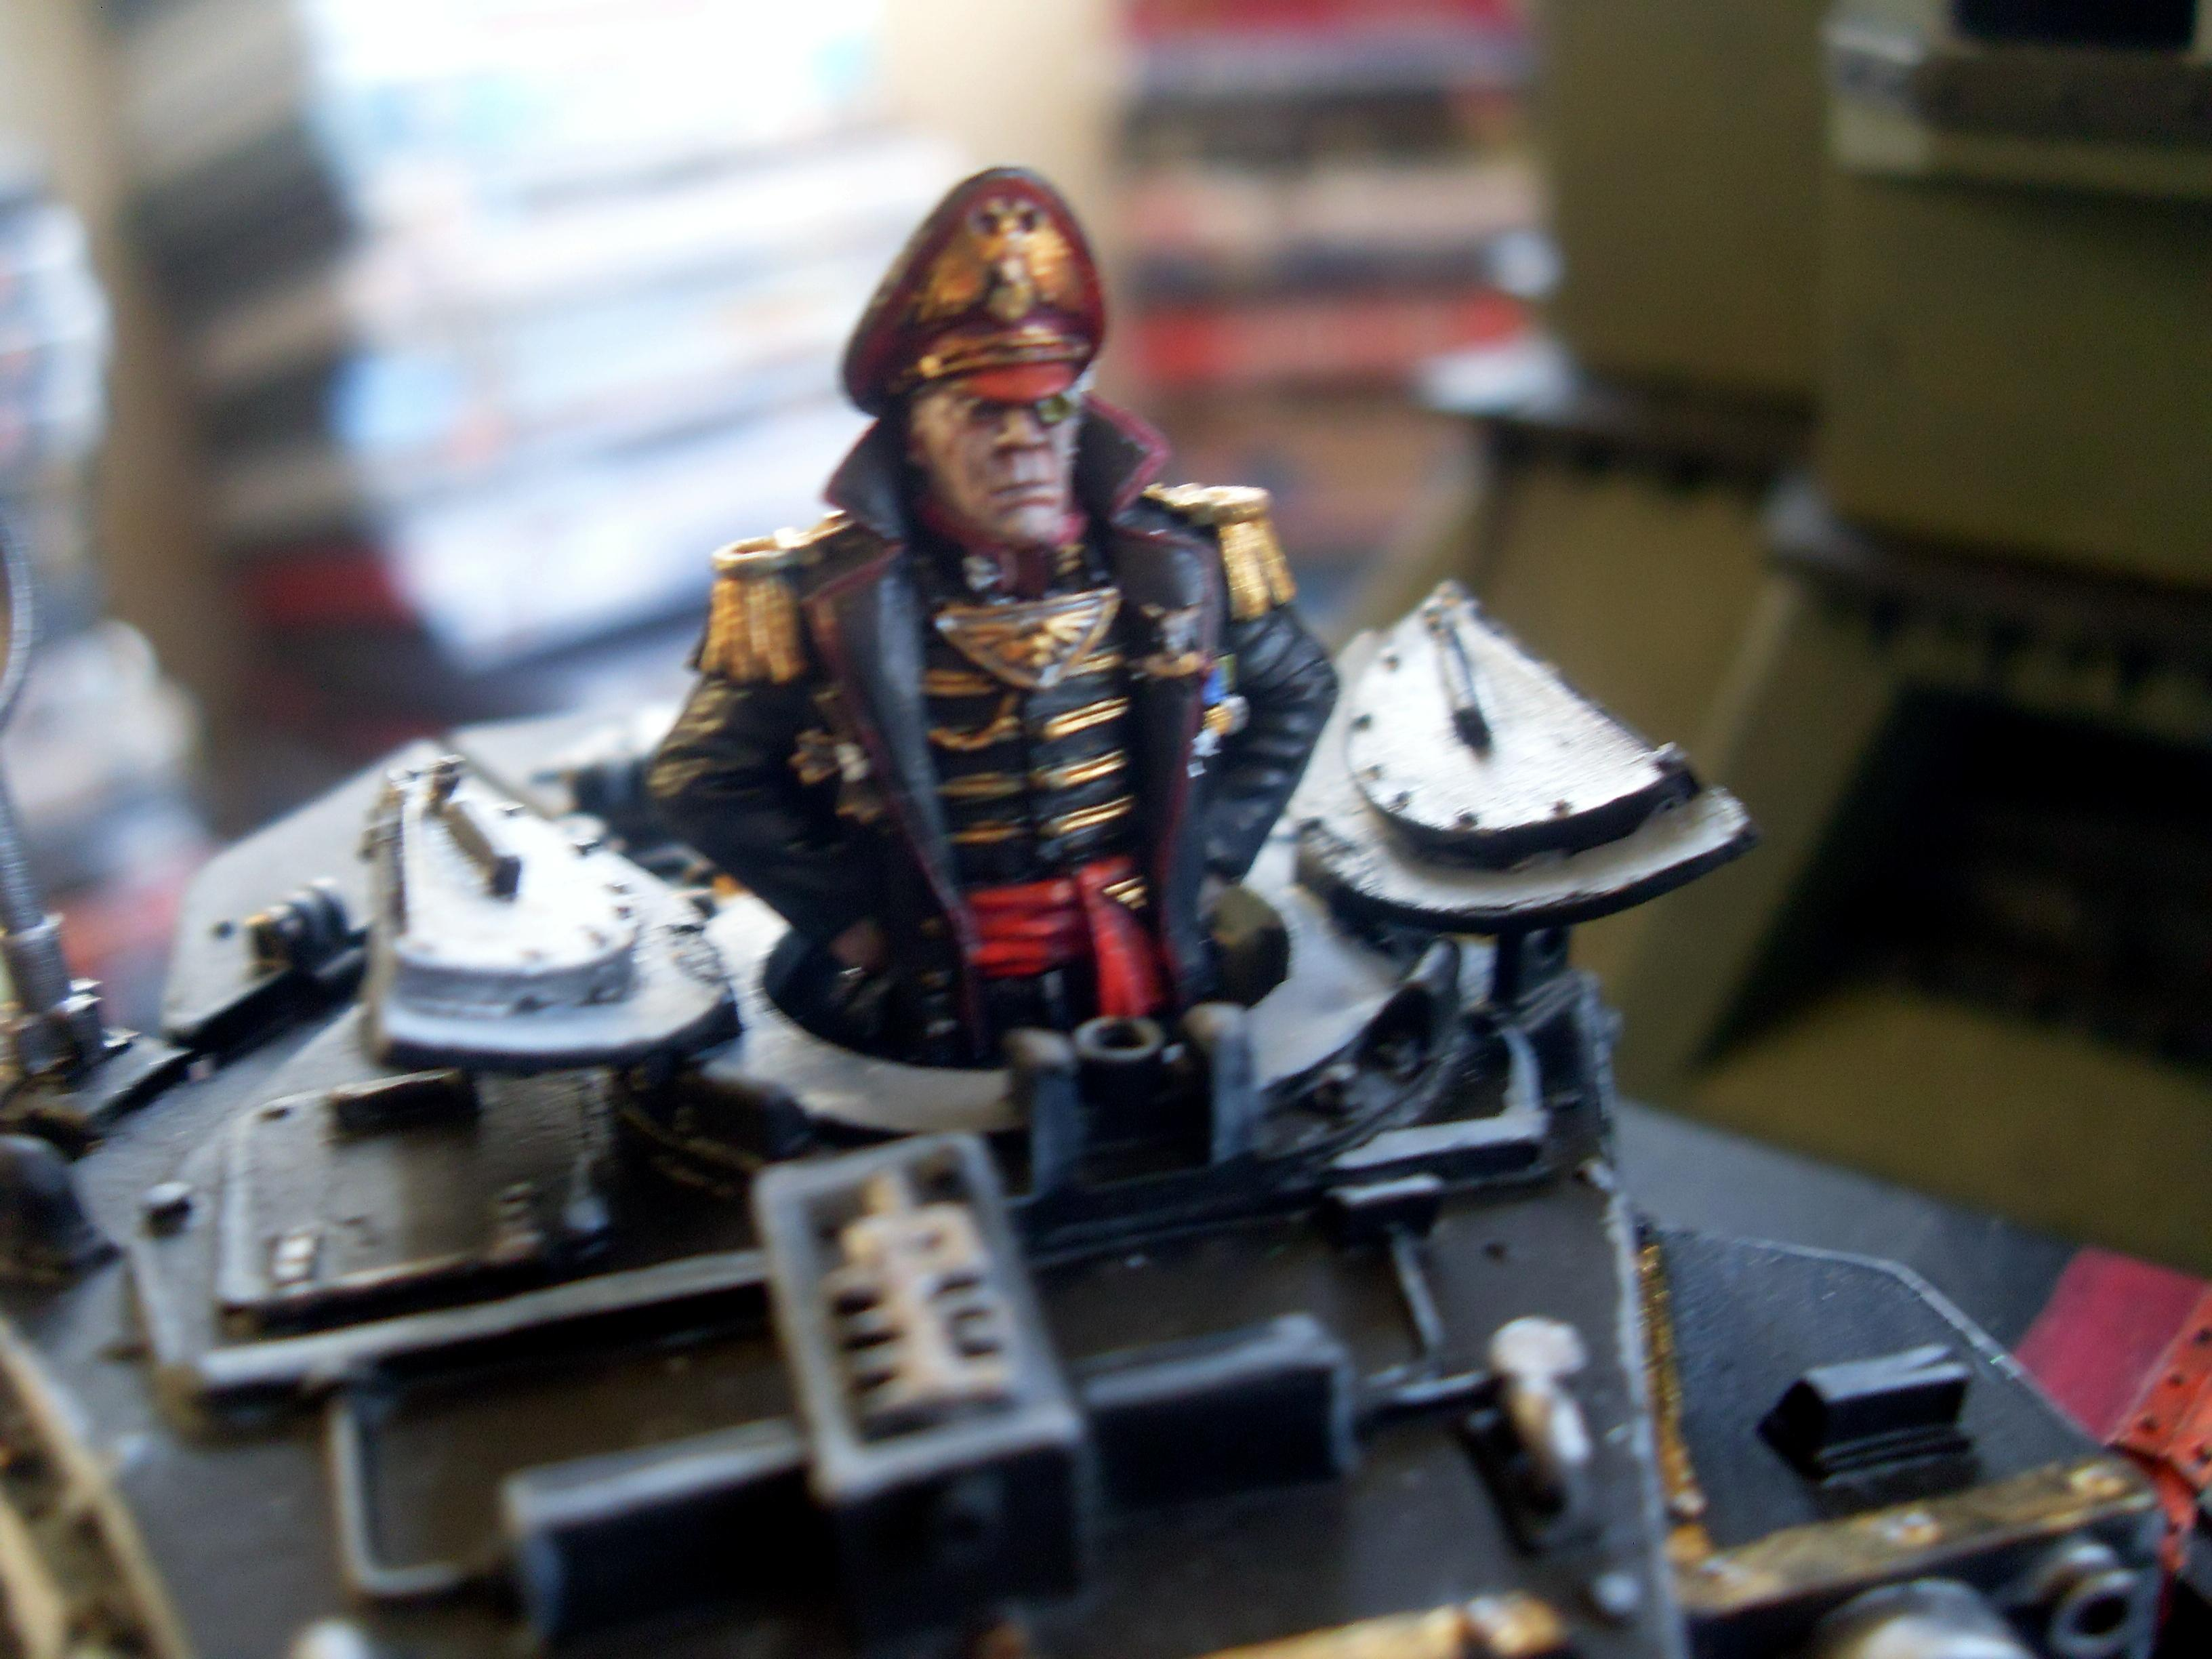 Apocalypse, Commissar, Imperial Guard, Warhammer 40,000